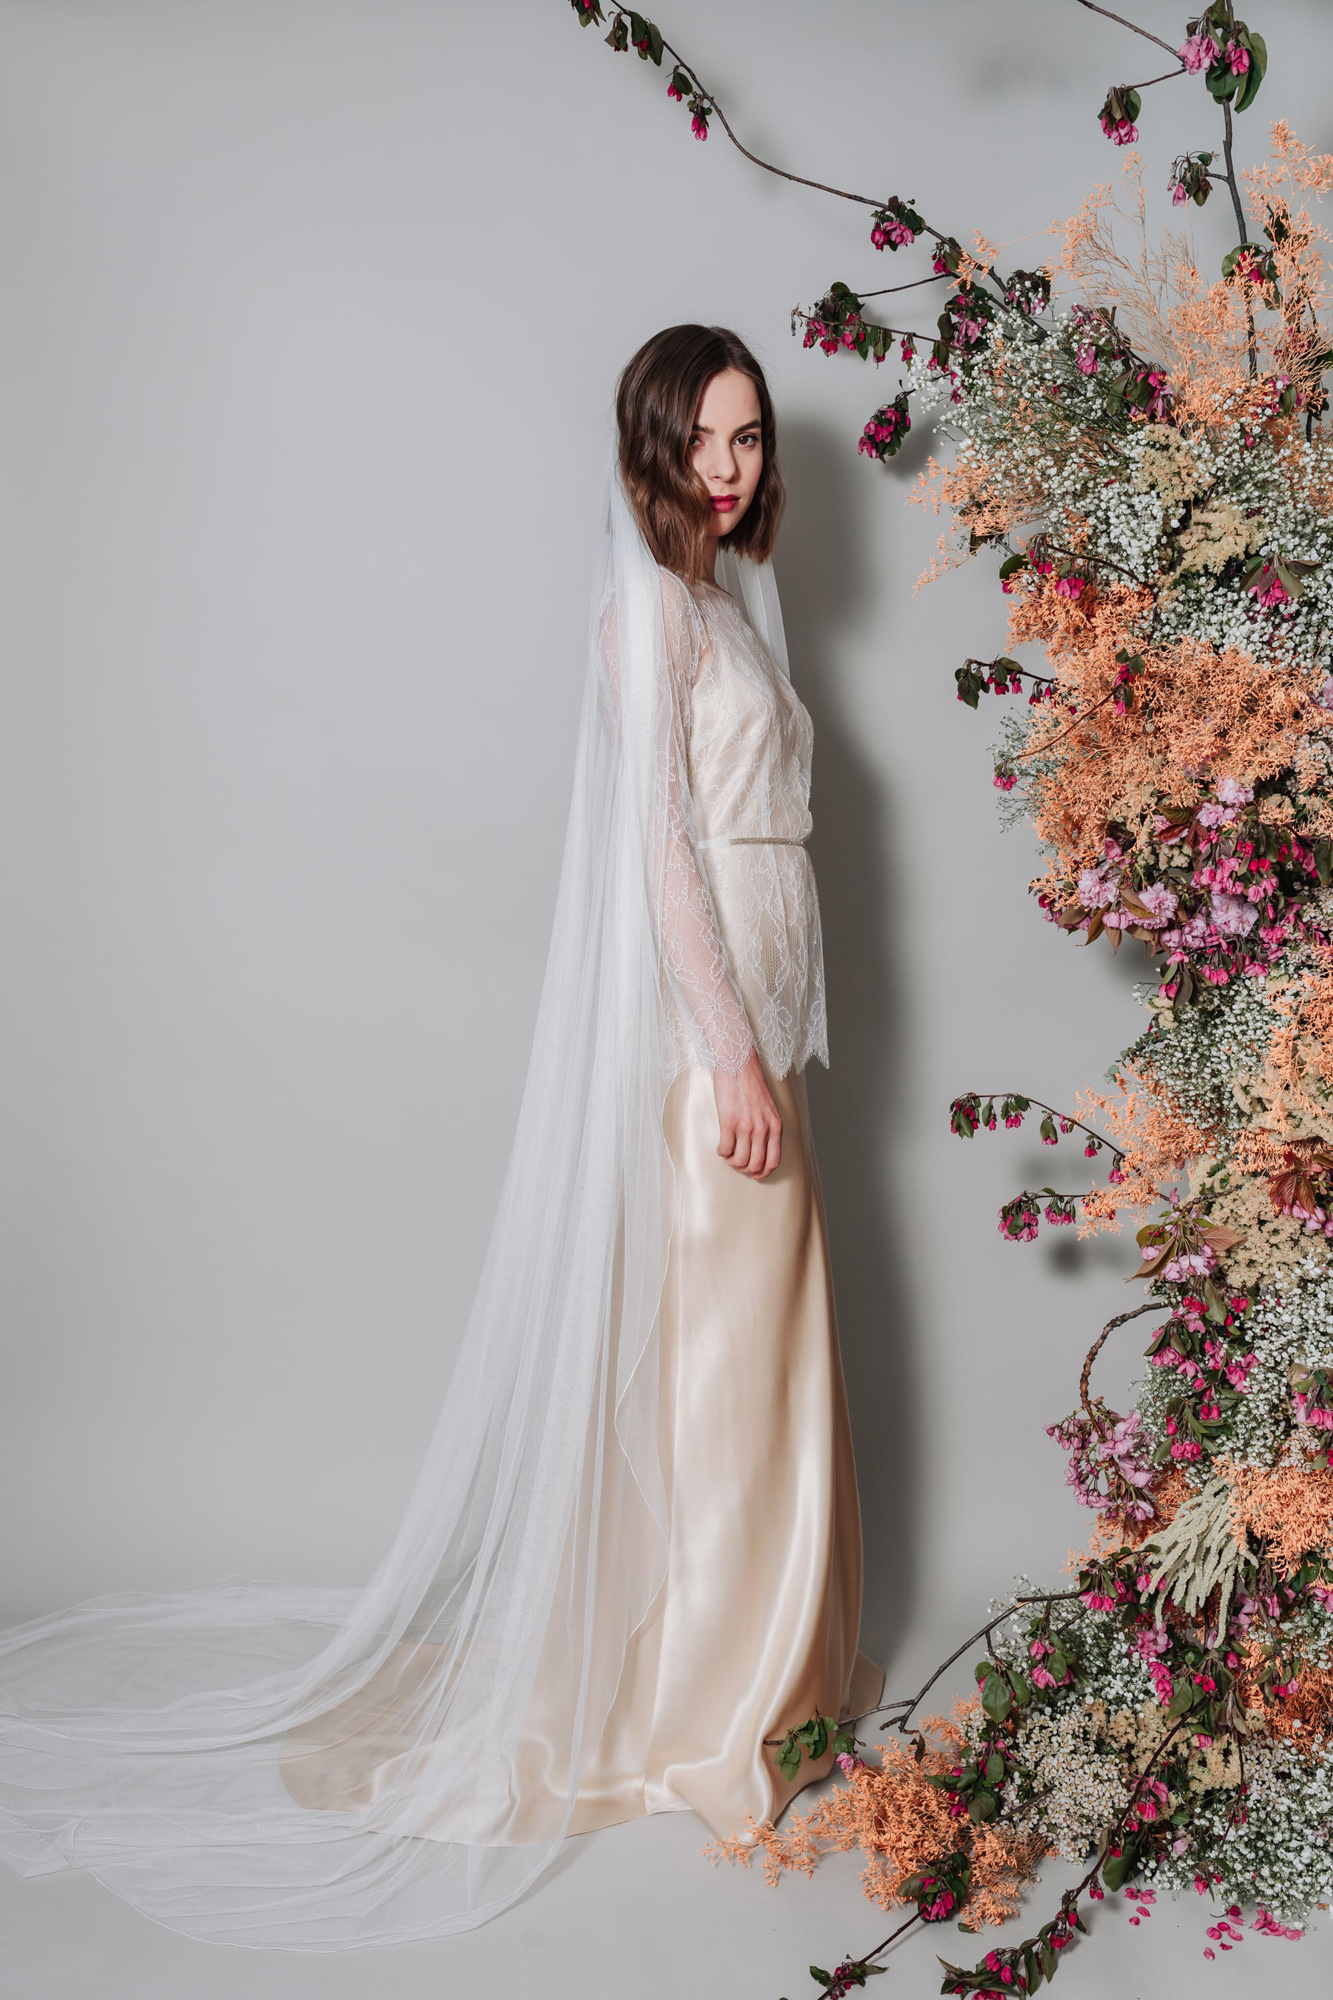 Kate-Beaumont-Sheffield-Thistle-Bridal-Separates-Two-Piece-Lace-Silk-Wedding-Gown-12.jpg